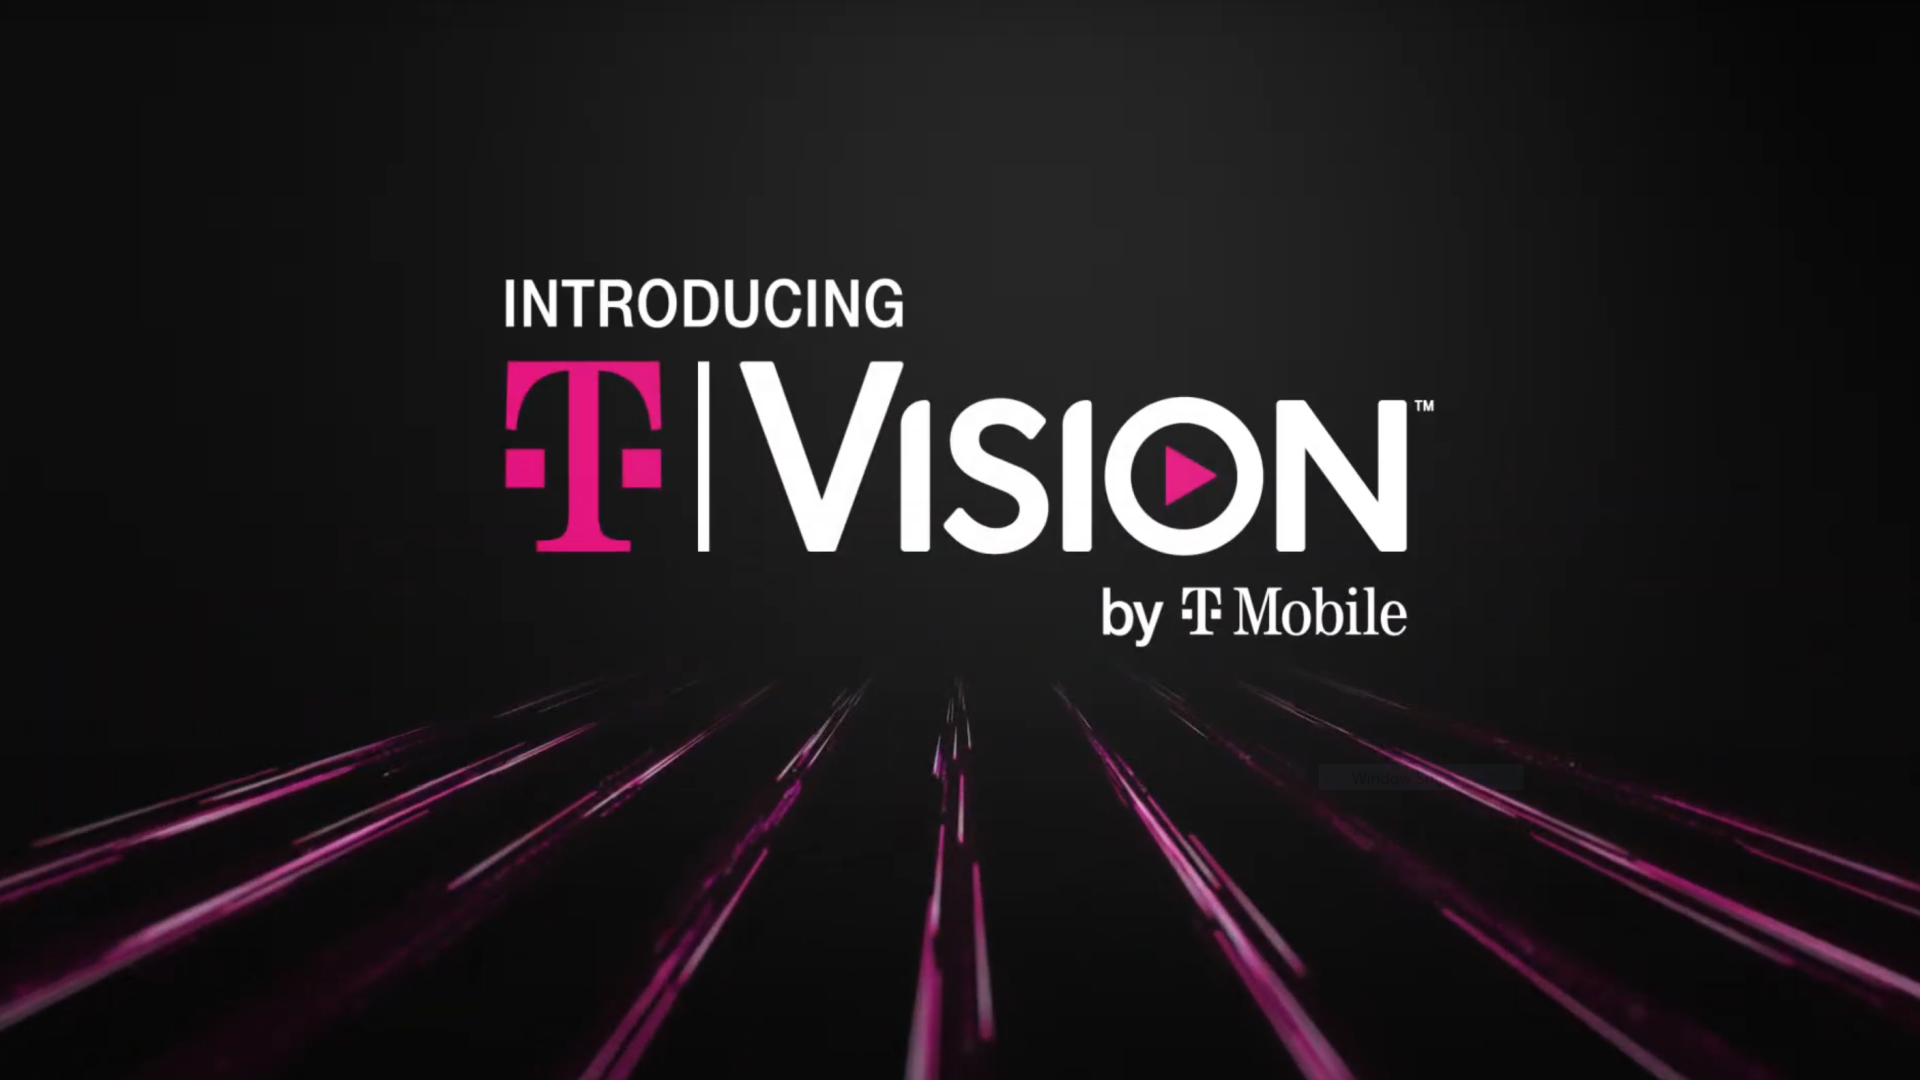 Mobile refocuses TVision with Android TV device and new plans